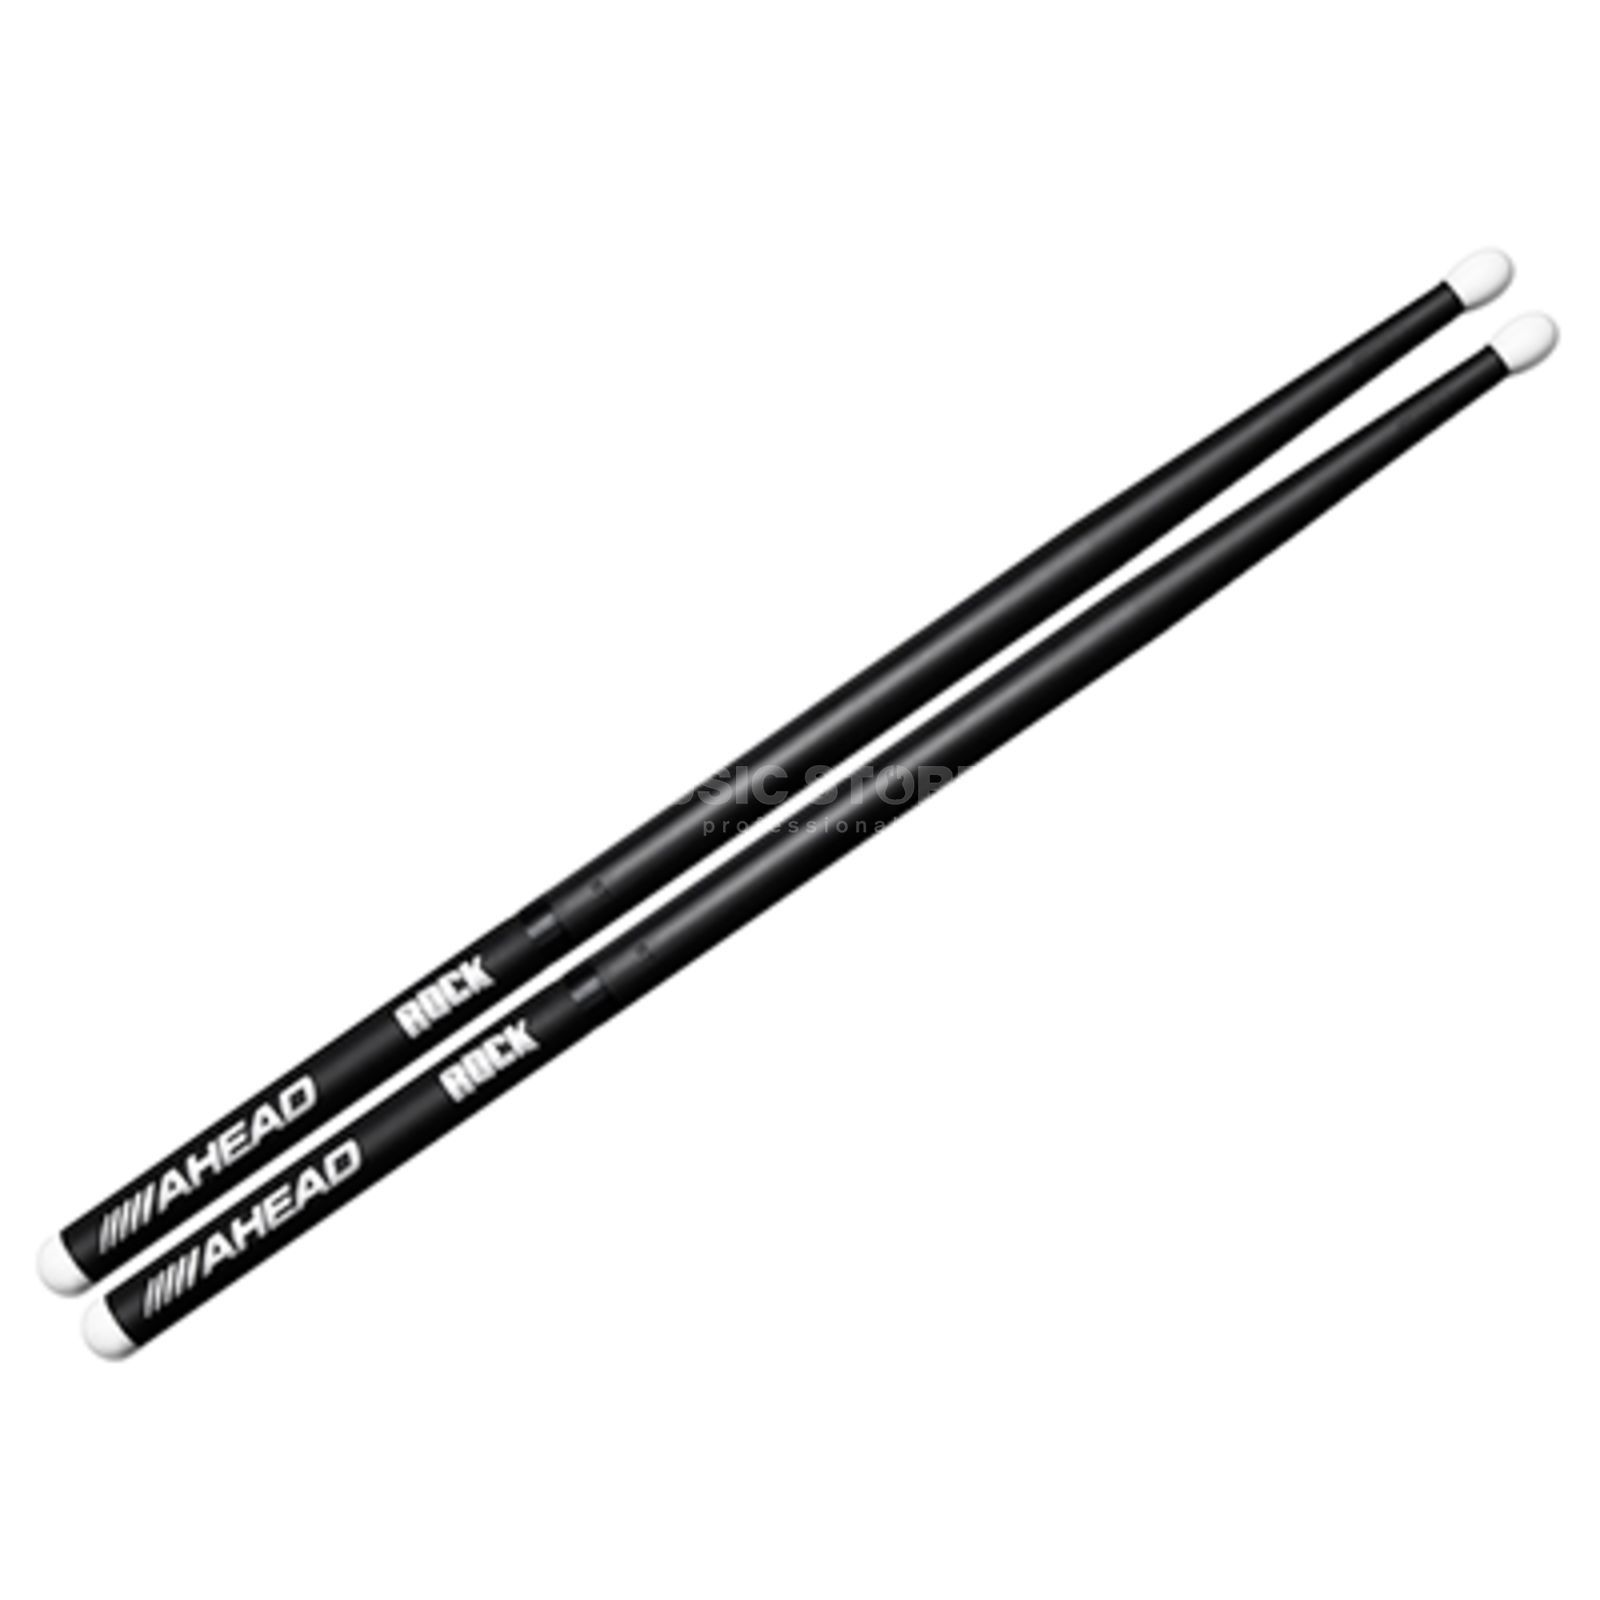 Ahead Sticks ROCK Aluminium Sticks Short Taper Produktbild